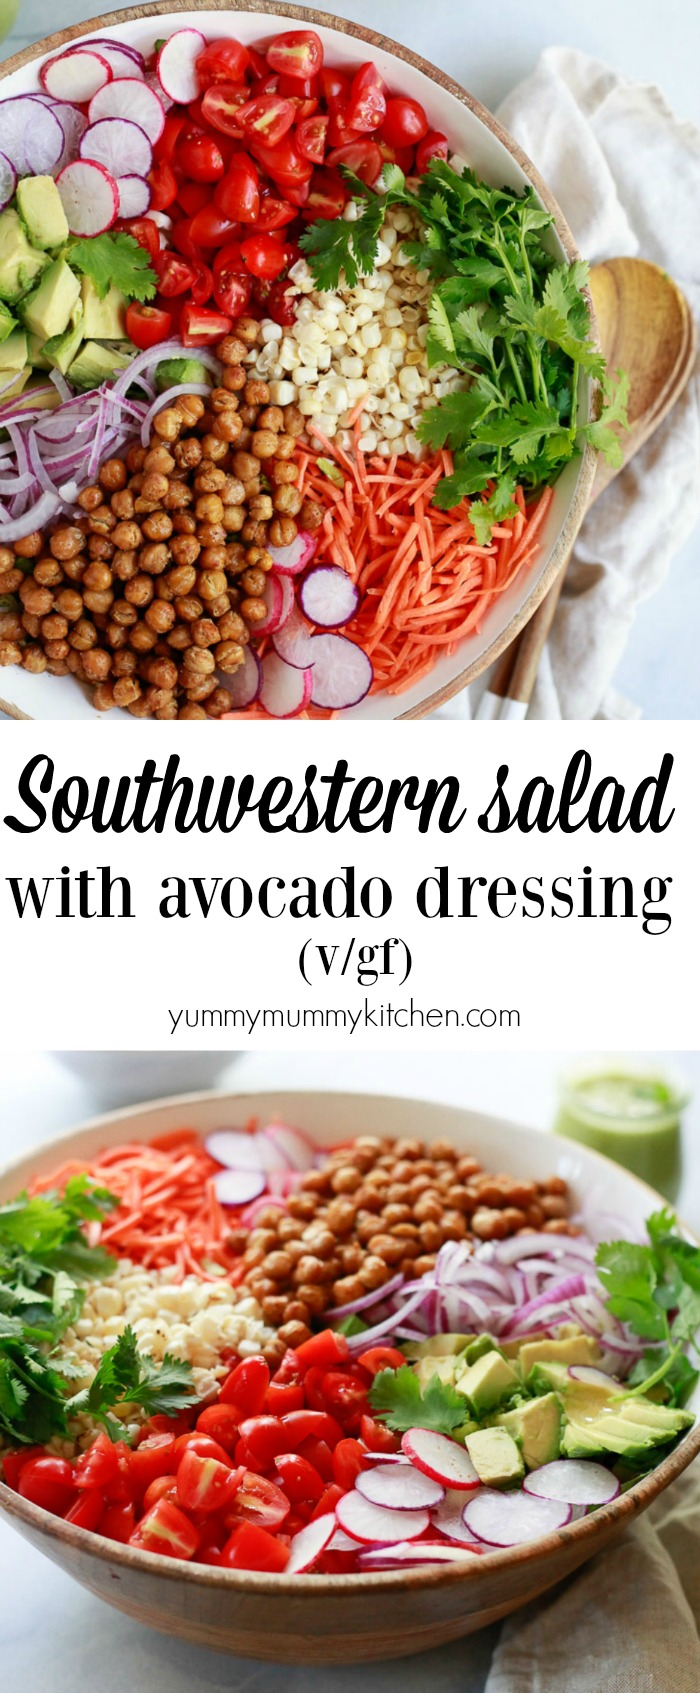 Southwest Salad recipe with avocado dressing, corn, roasted chickpeas, tomatoes, cilantro, and avocado is a delicious vegetarian, vegan, plant-based dinner salad.